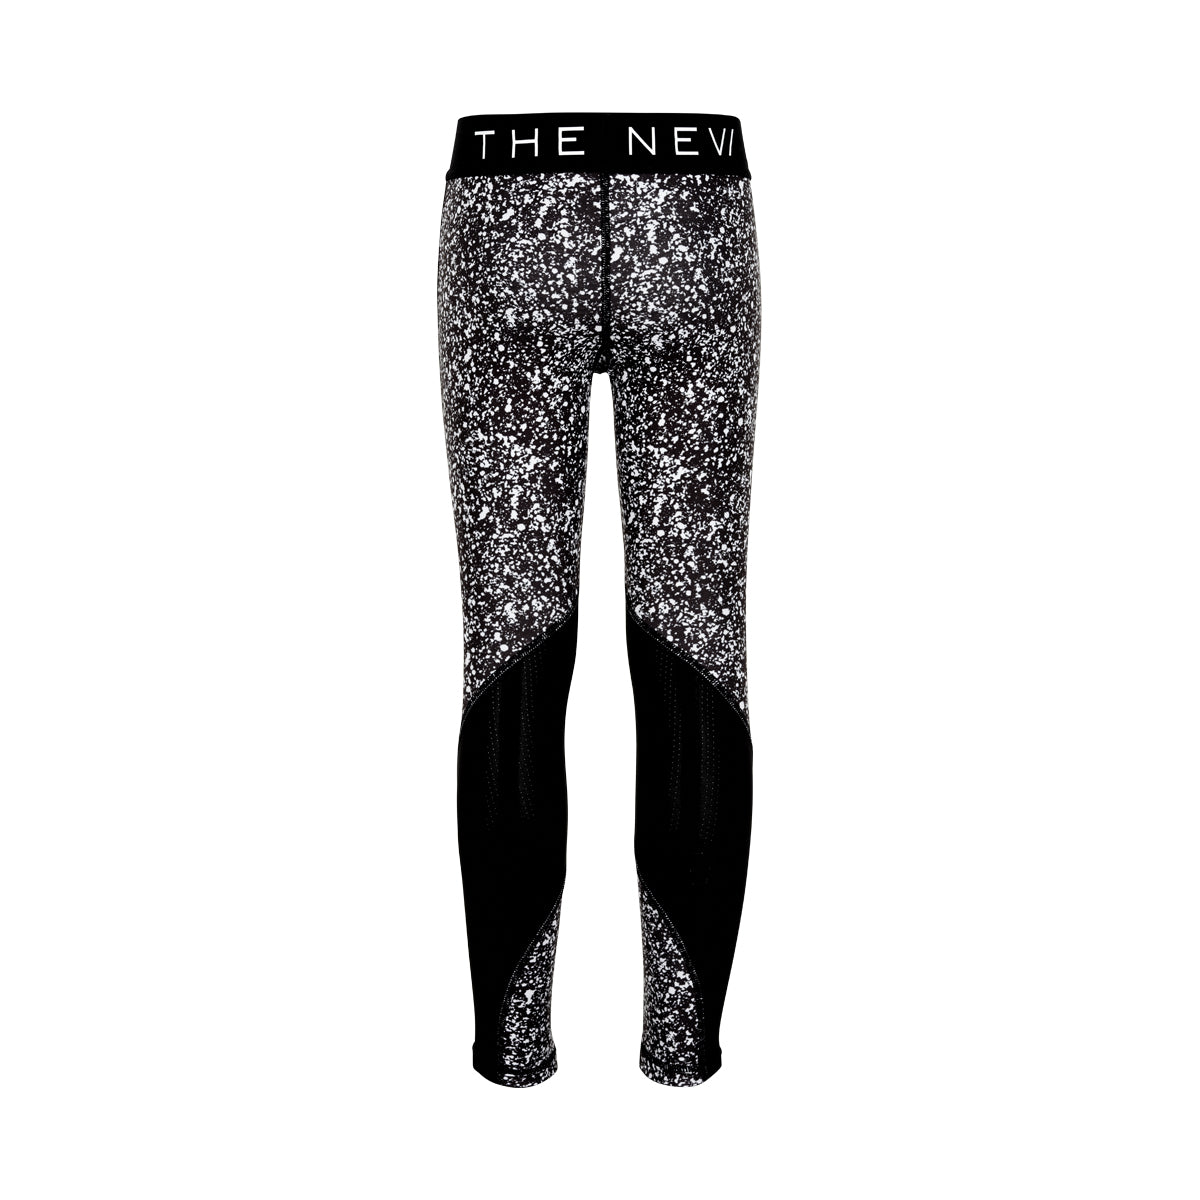 PURE Manik Tights - BLACK-THE NEW PURE-THE NEW PURE